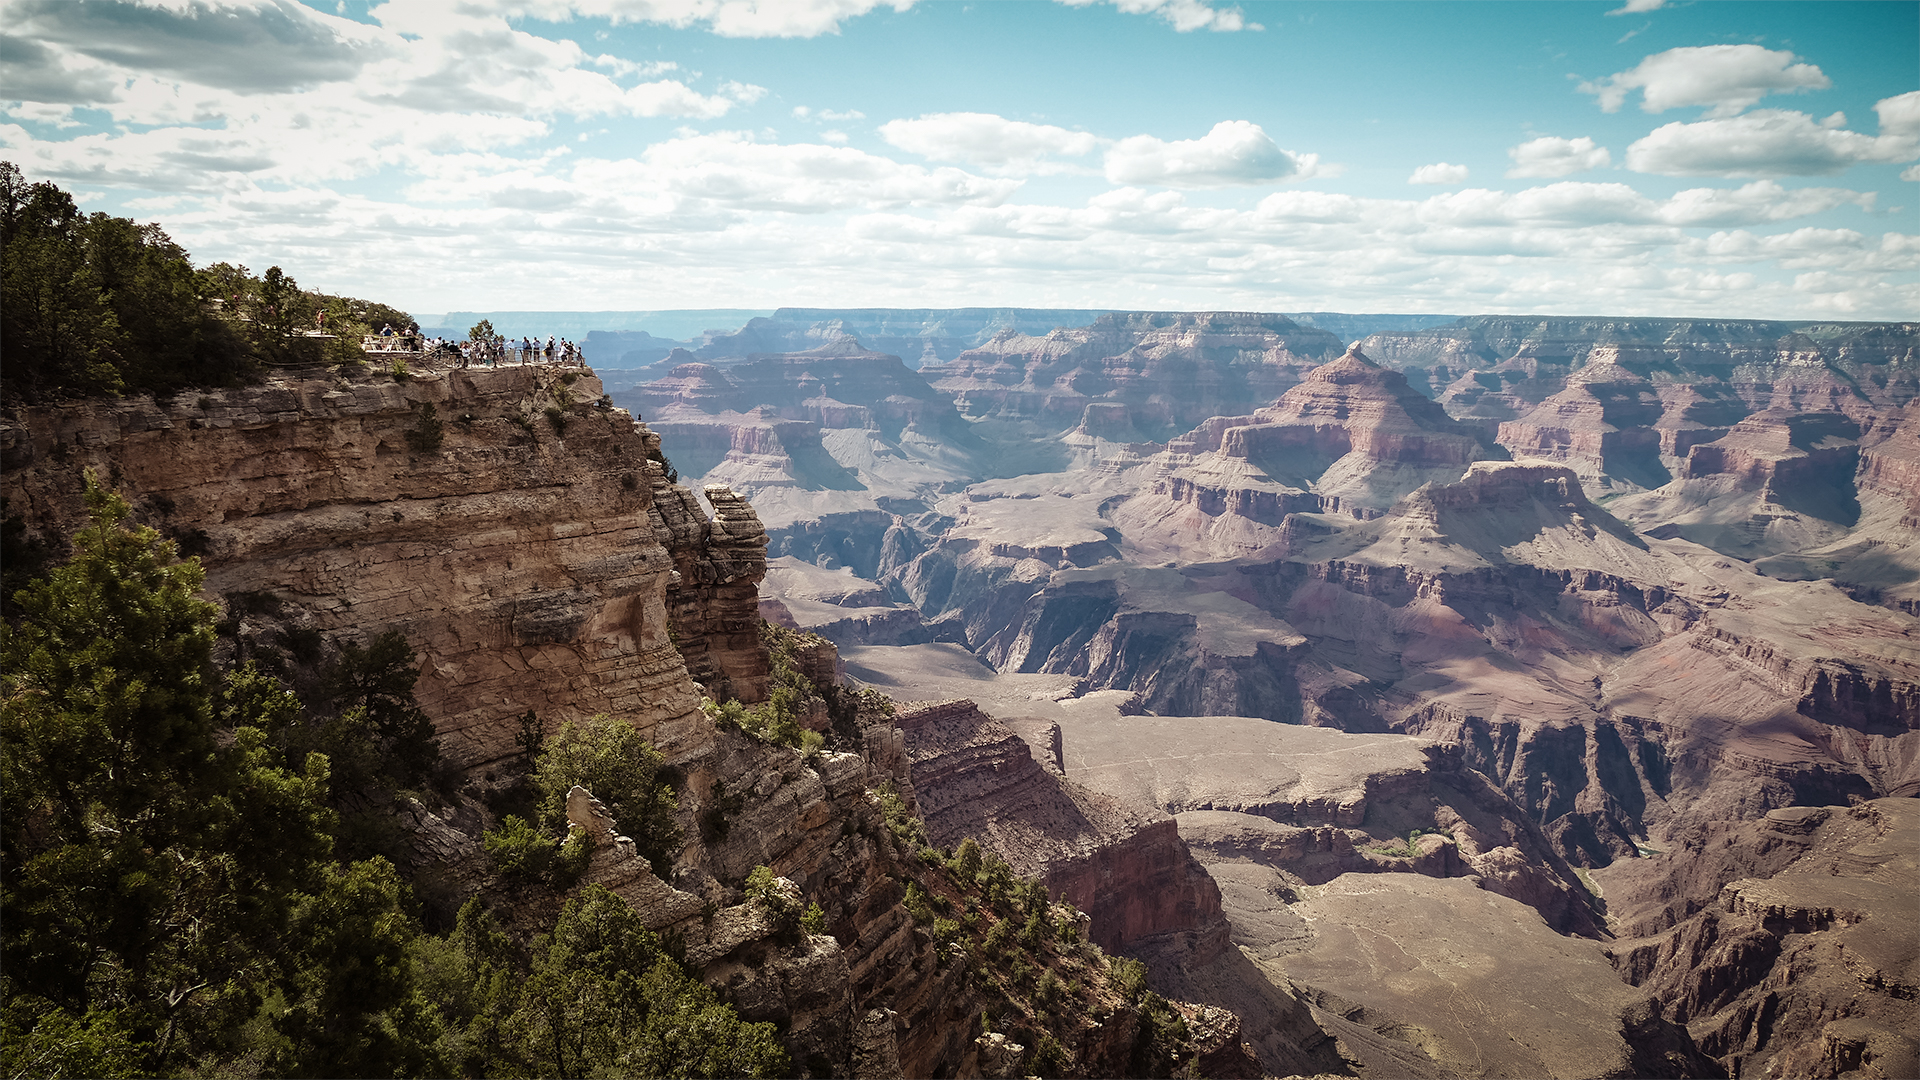 ShermansTravel - The Grand Canyon: How to See It and How to Save